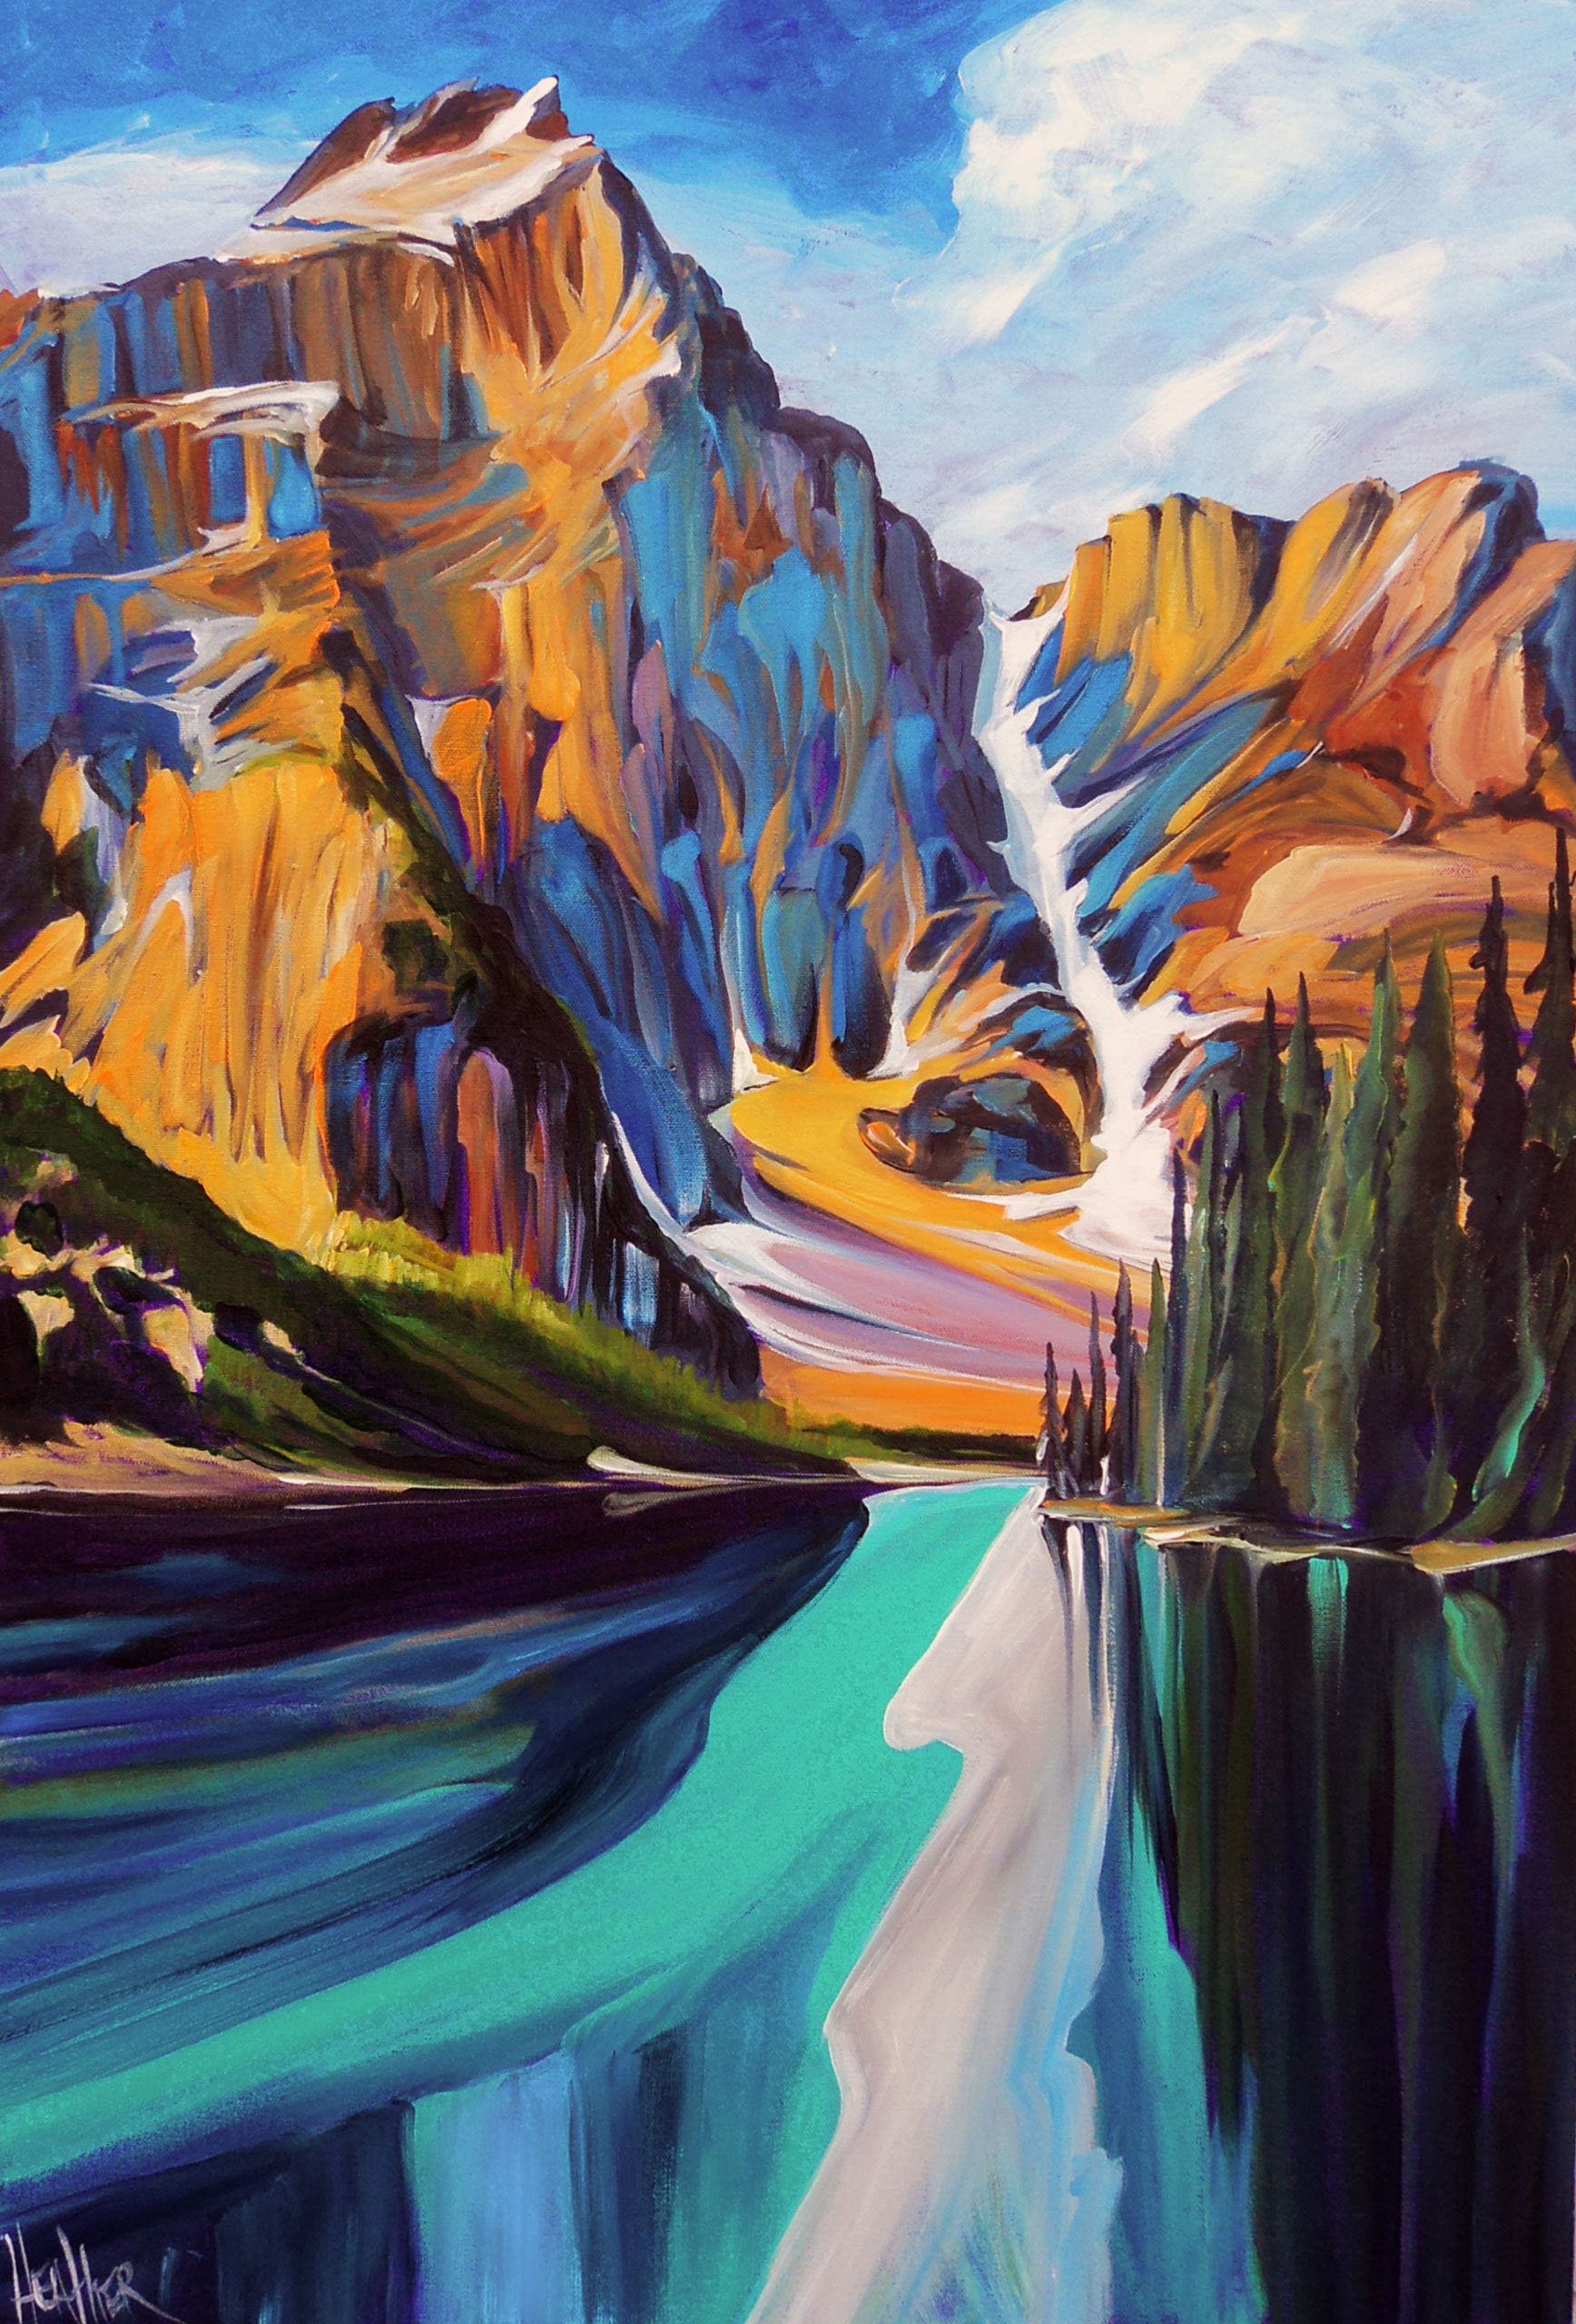 Moraine Magnanimous 24 X 36 SOLD